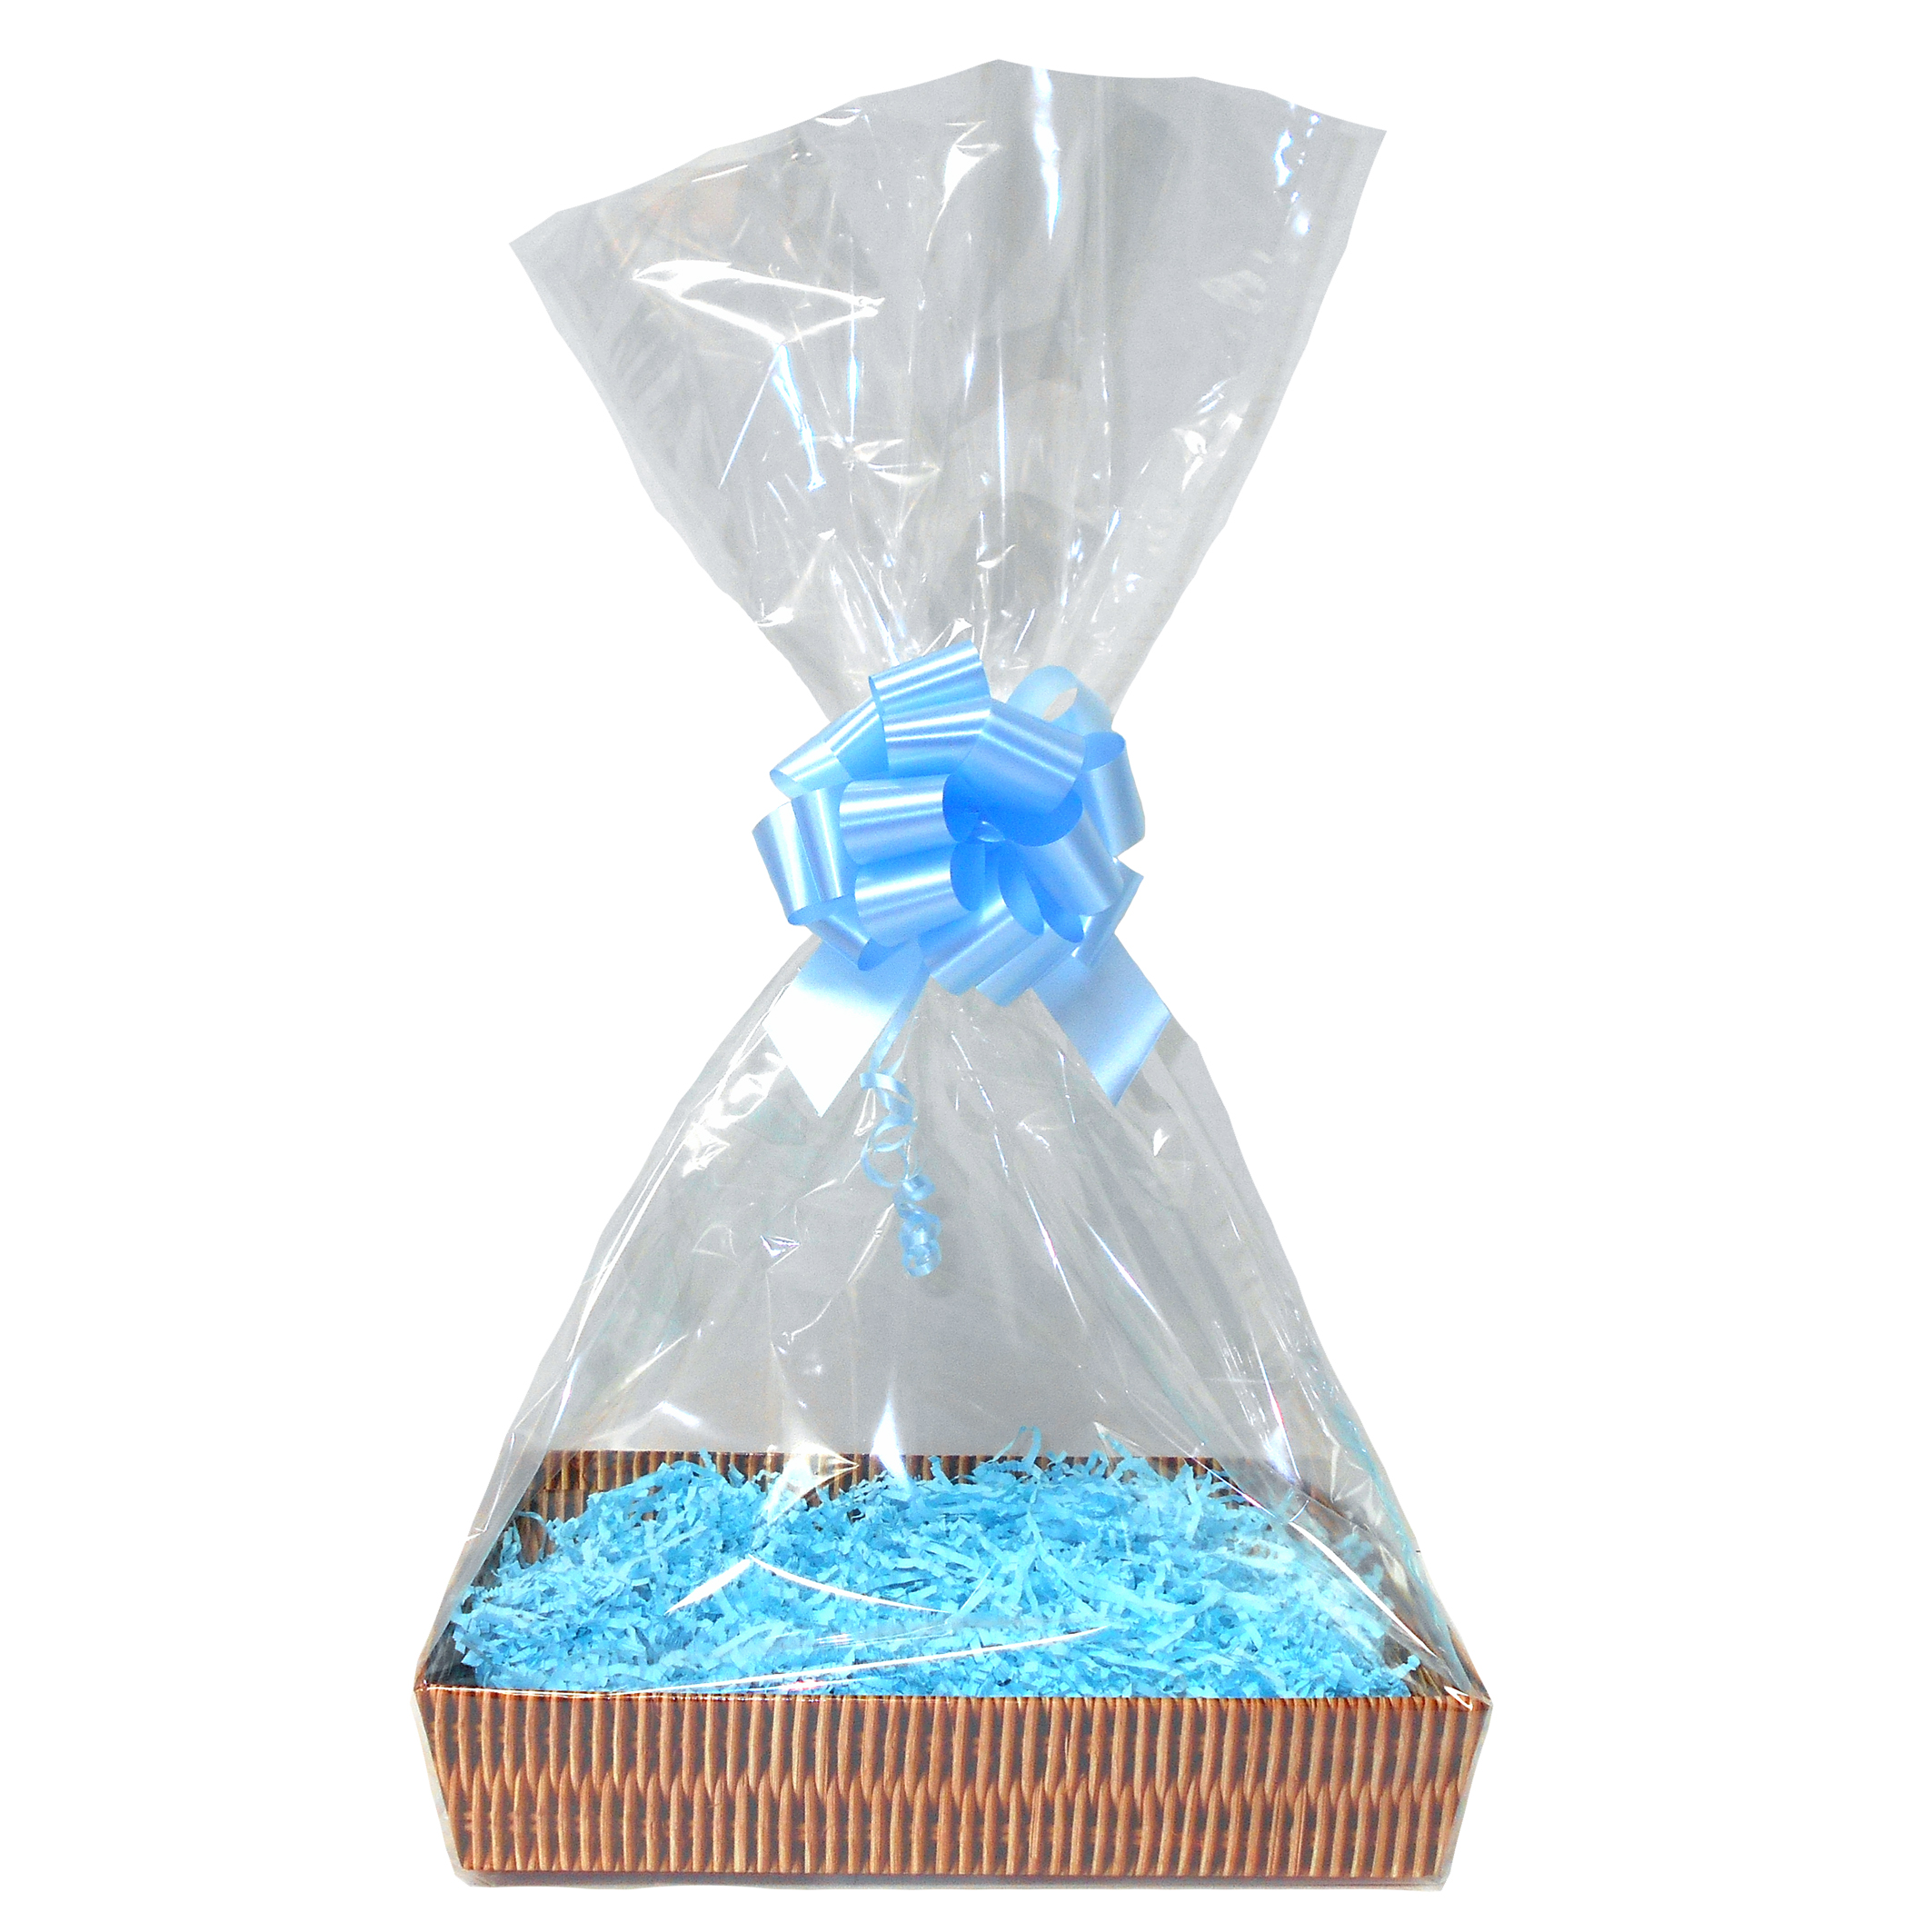 Complete Gift Basket Kit - (Small) WICKER TRAY / BLUE ACCESSORIES